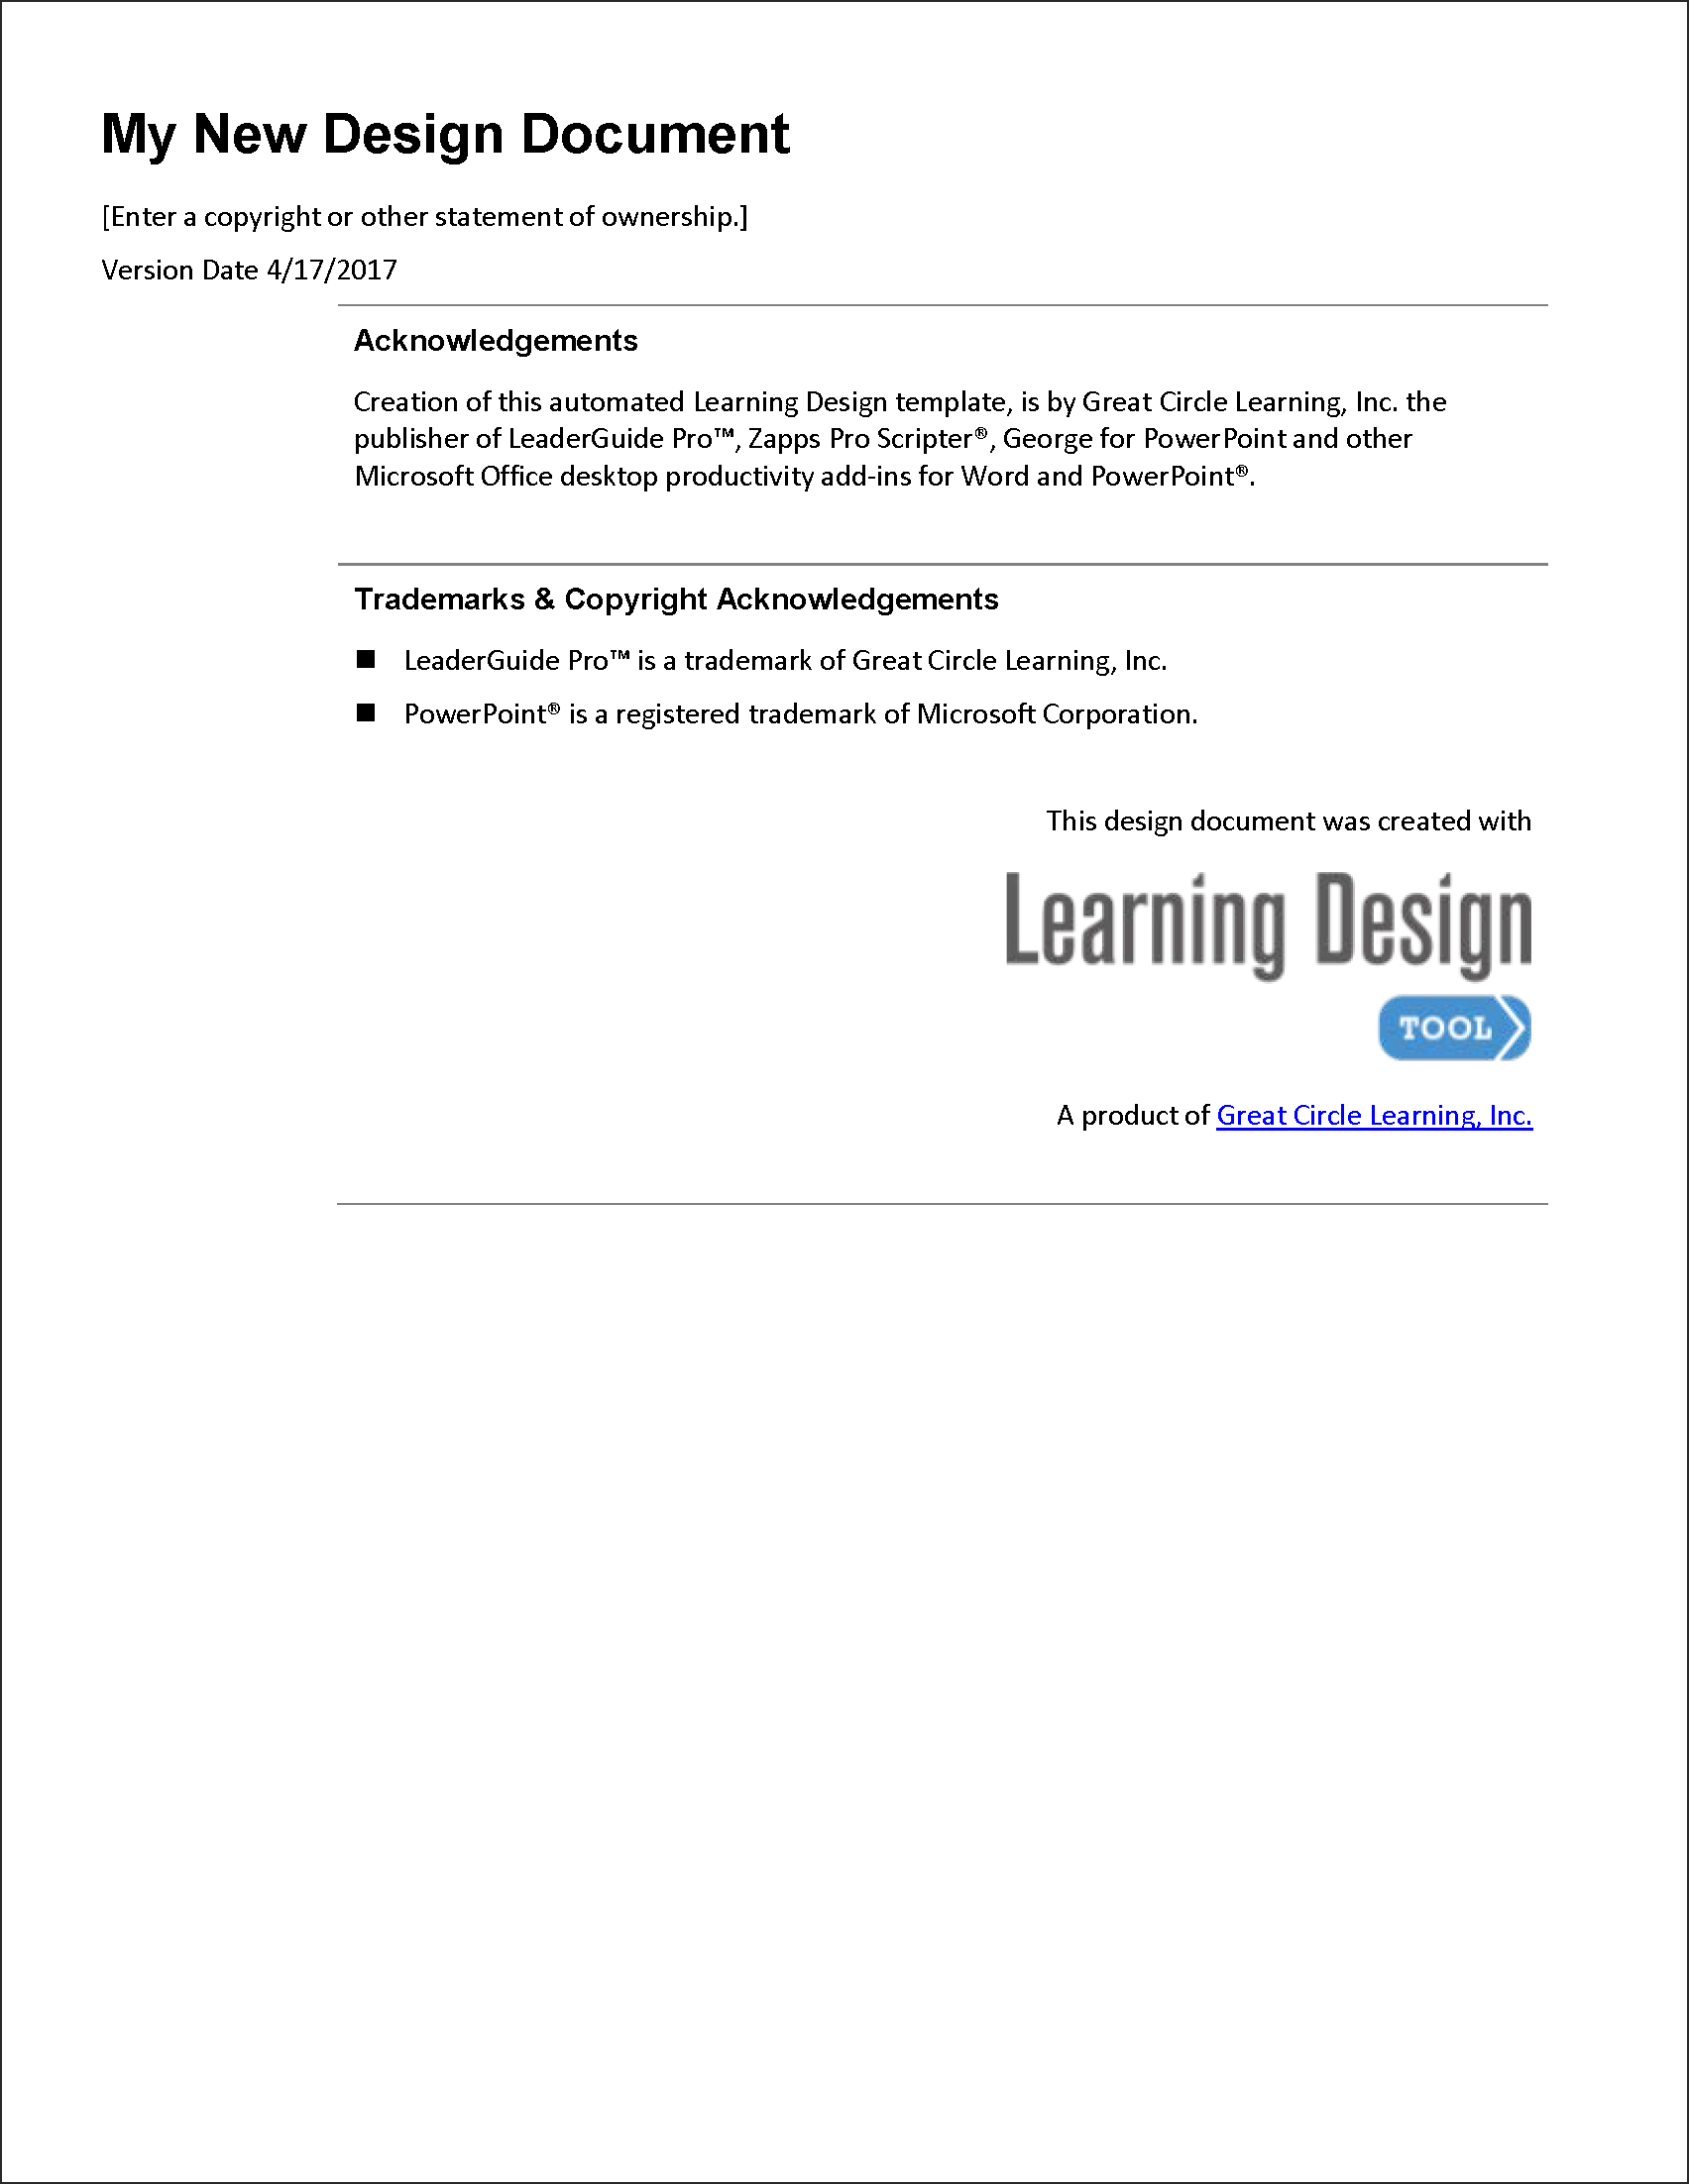 4-17-17-My New Design Document_Page_2.png